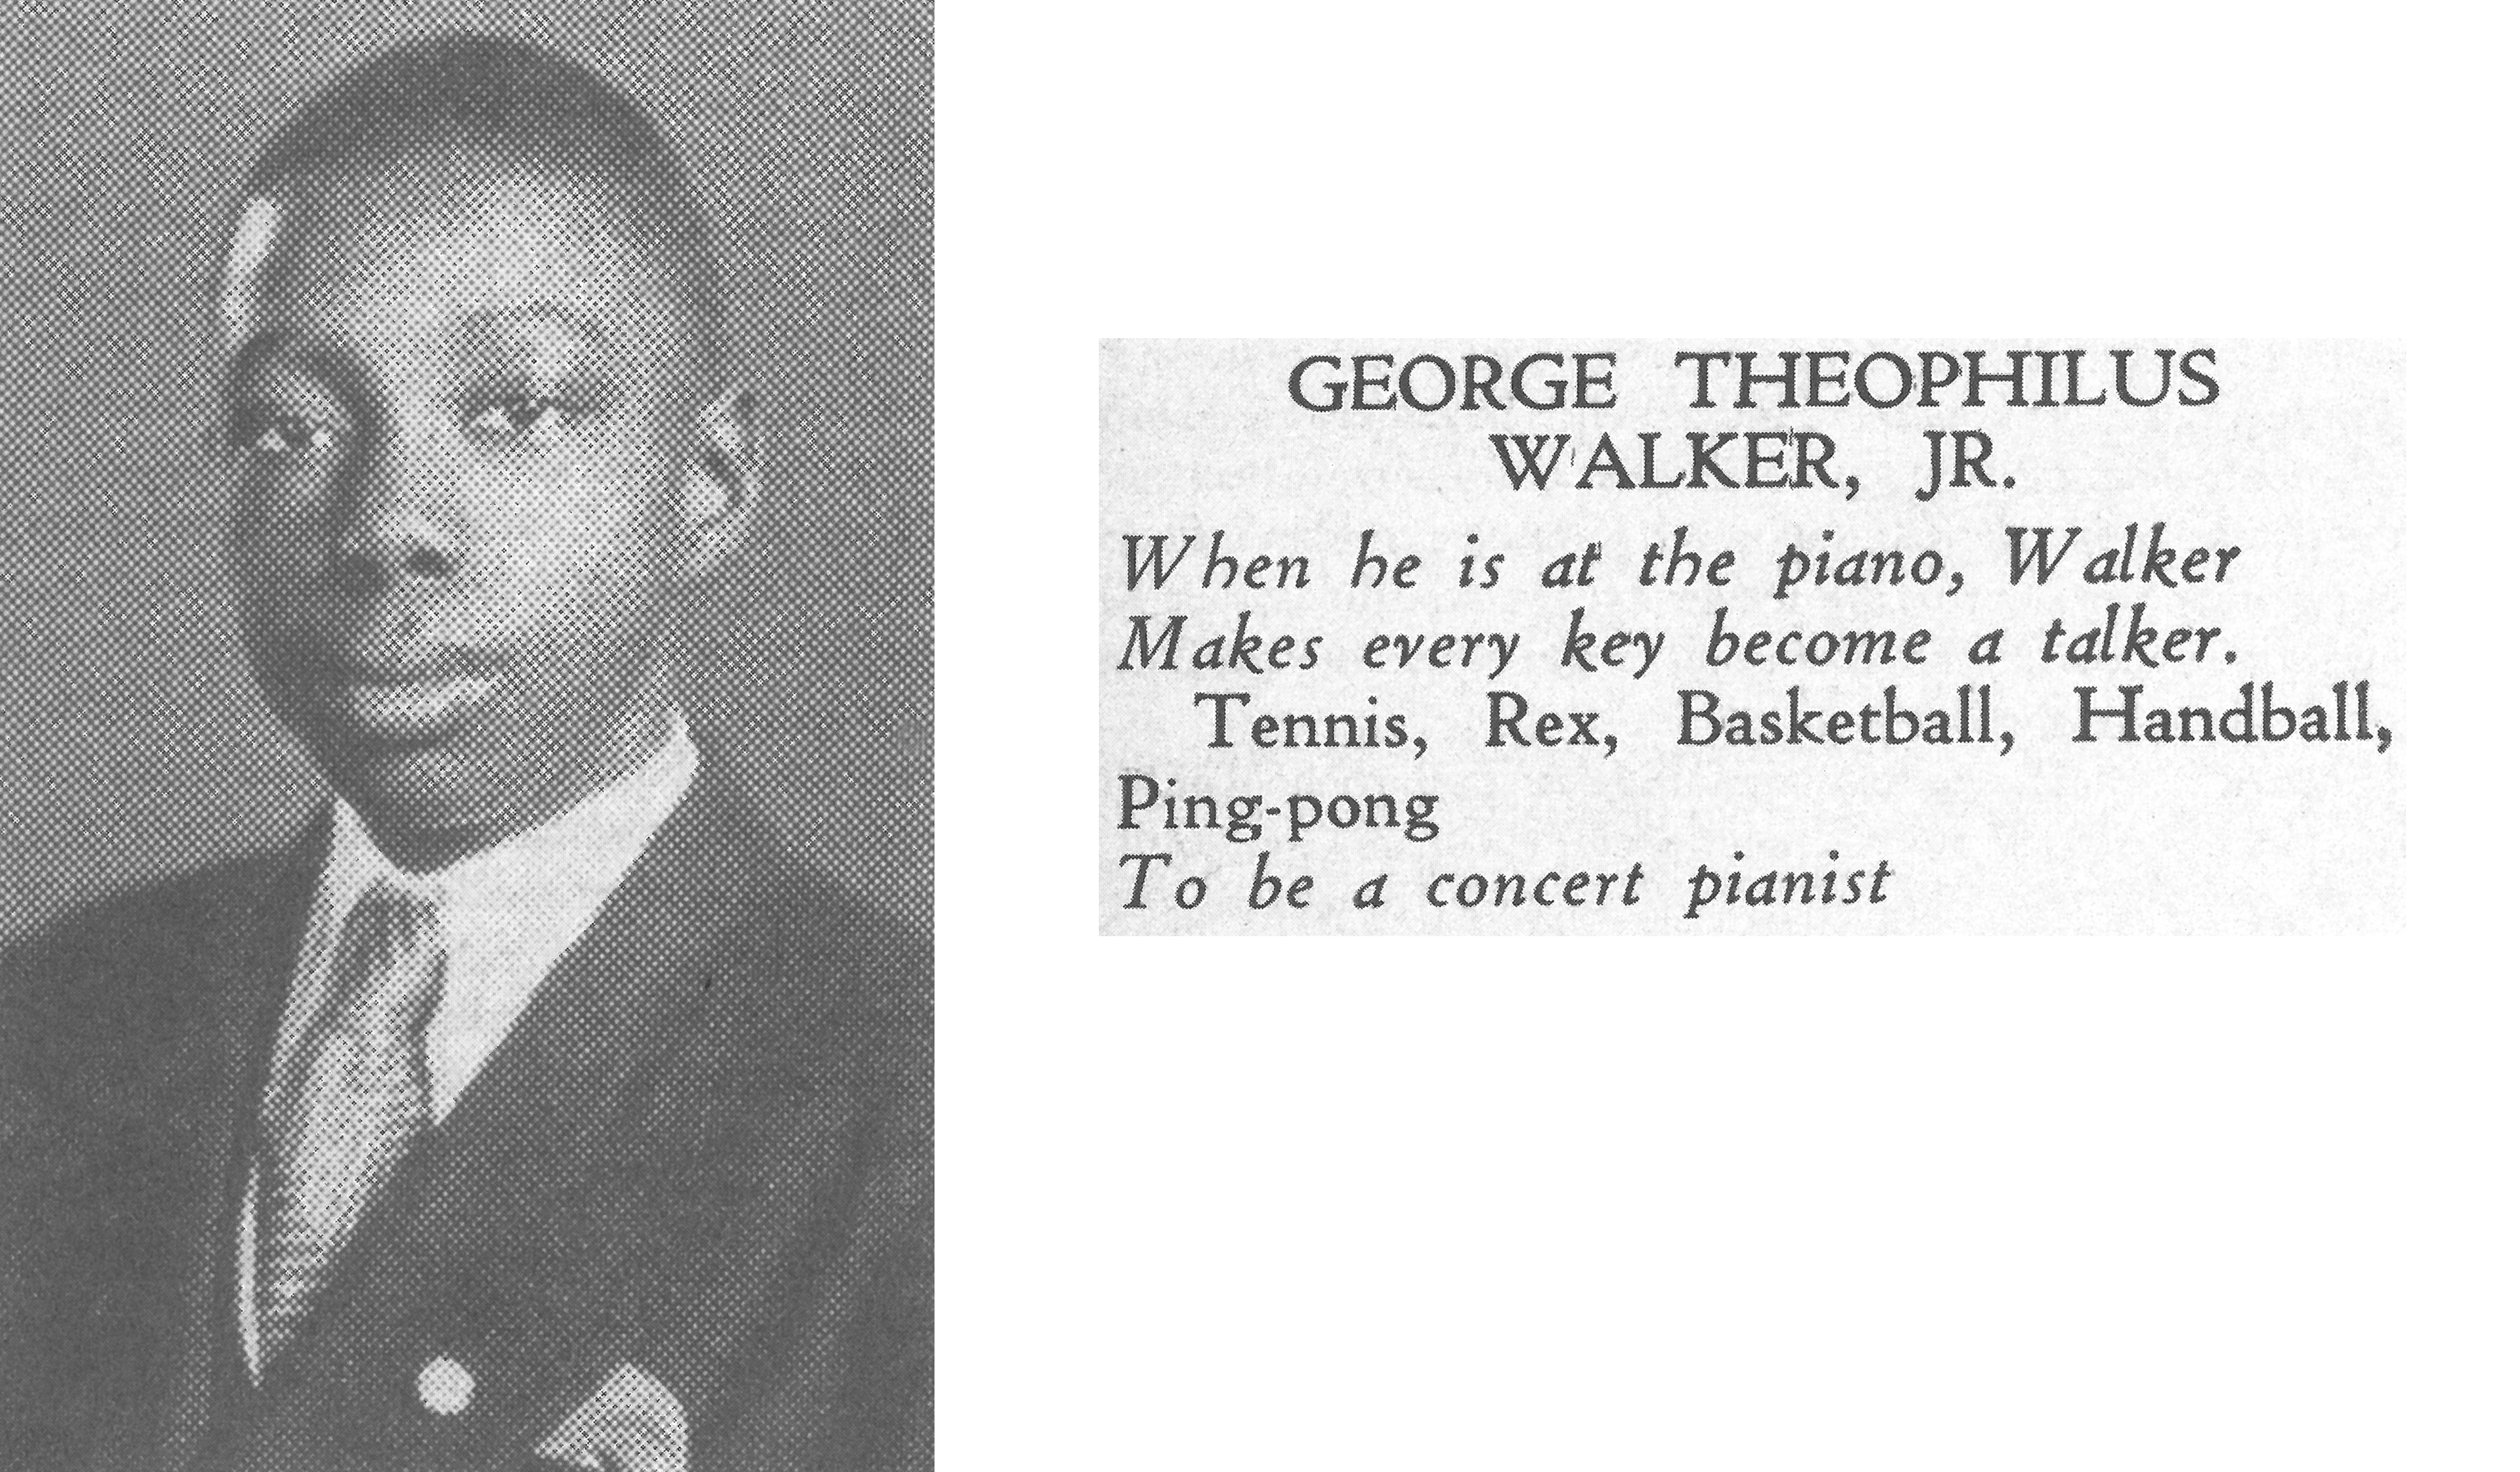 George Walker's photo and a quote about him that appeared in the 1937 Yearbook of Dunbar High School in Washington. D.C.